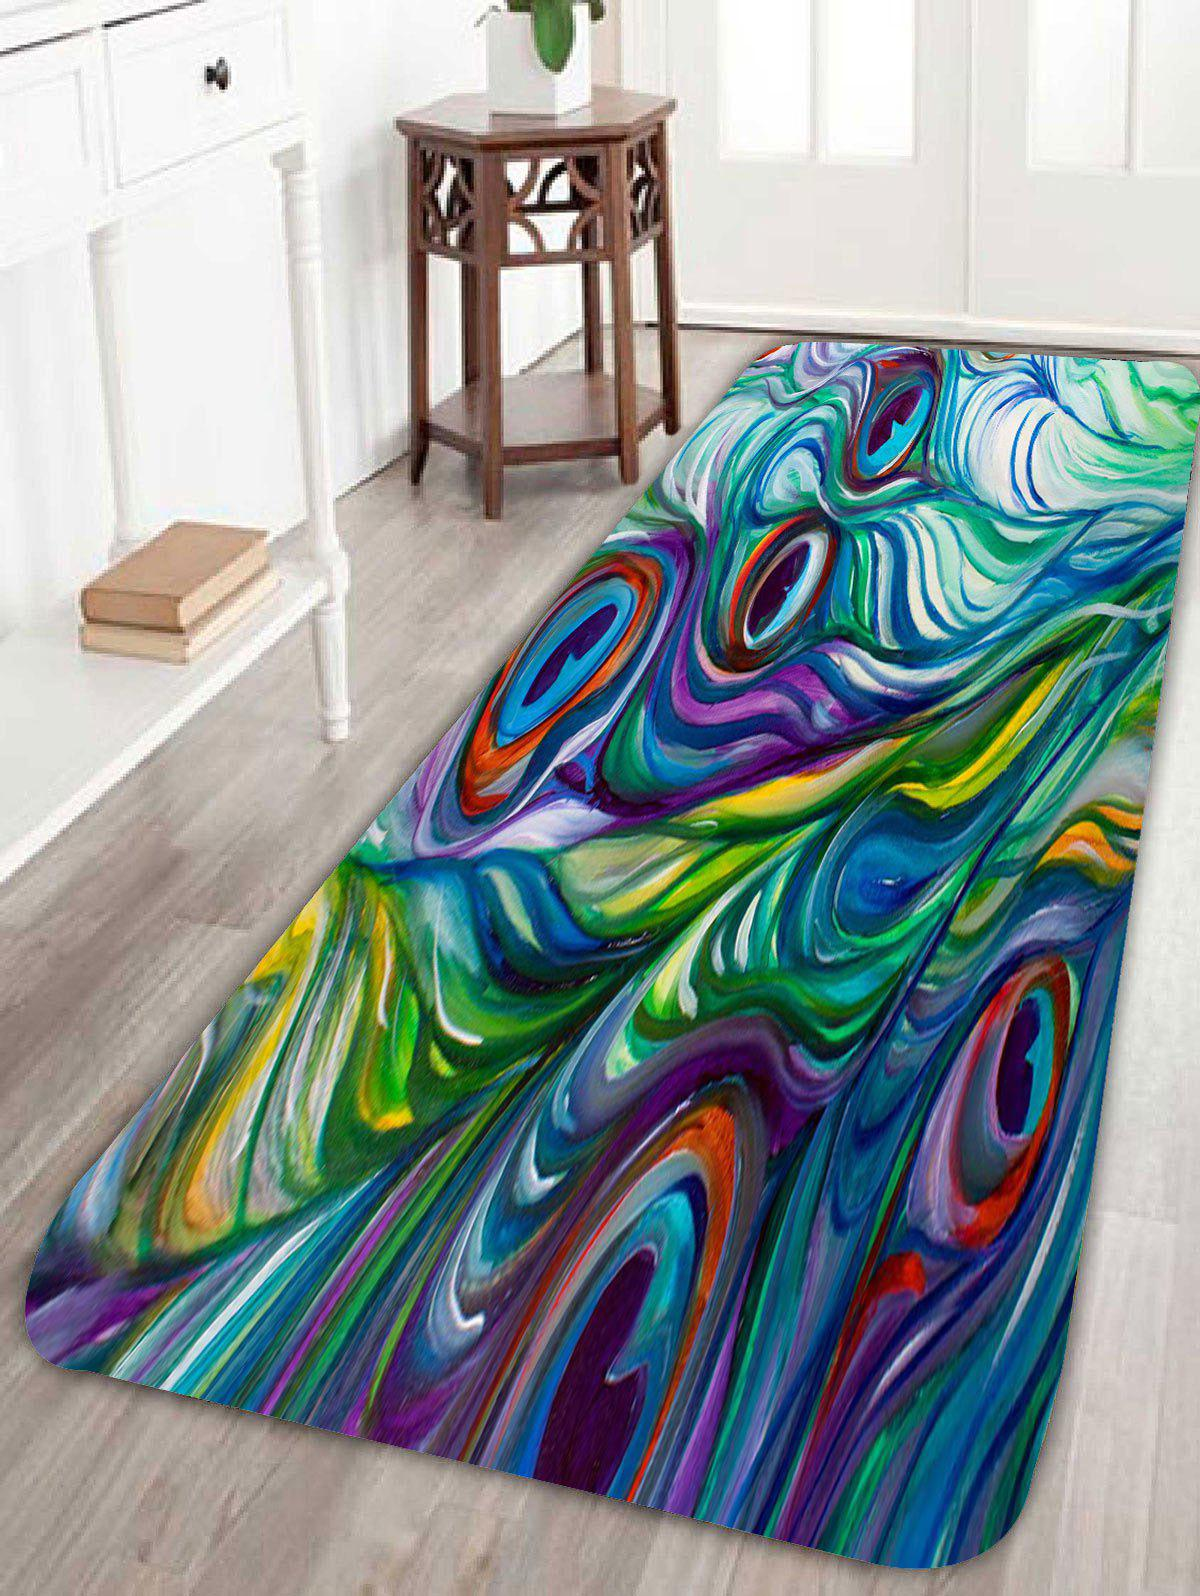 Peacock bathroom rug - Peacock Feather Coral Fleece Skidproof Bath Rug Colorful W16 Inch L47 Inch